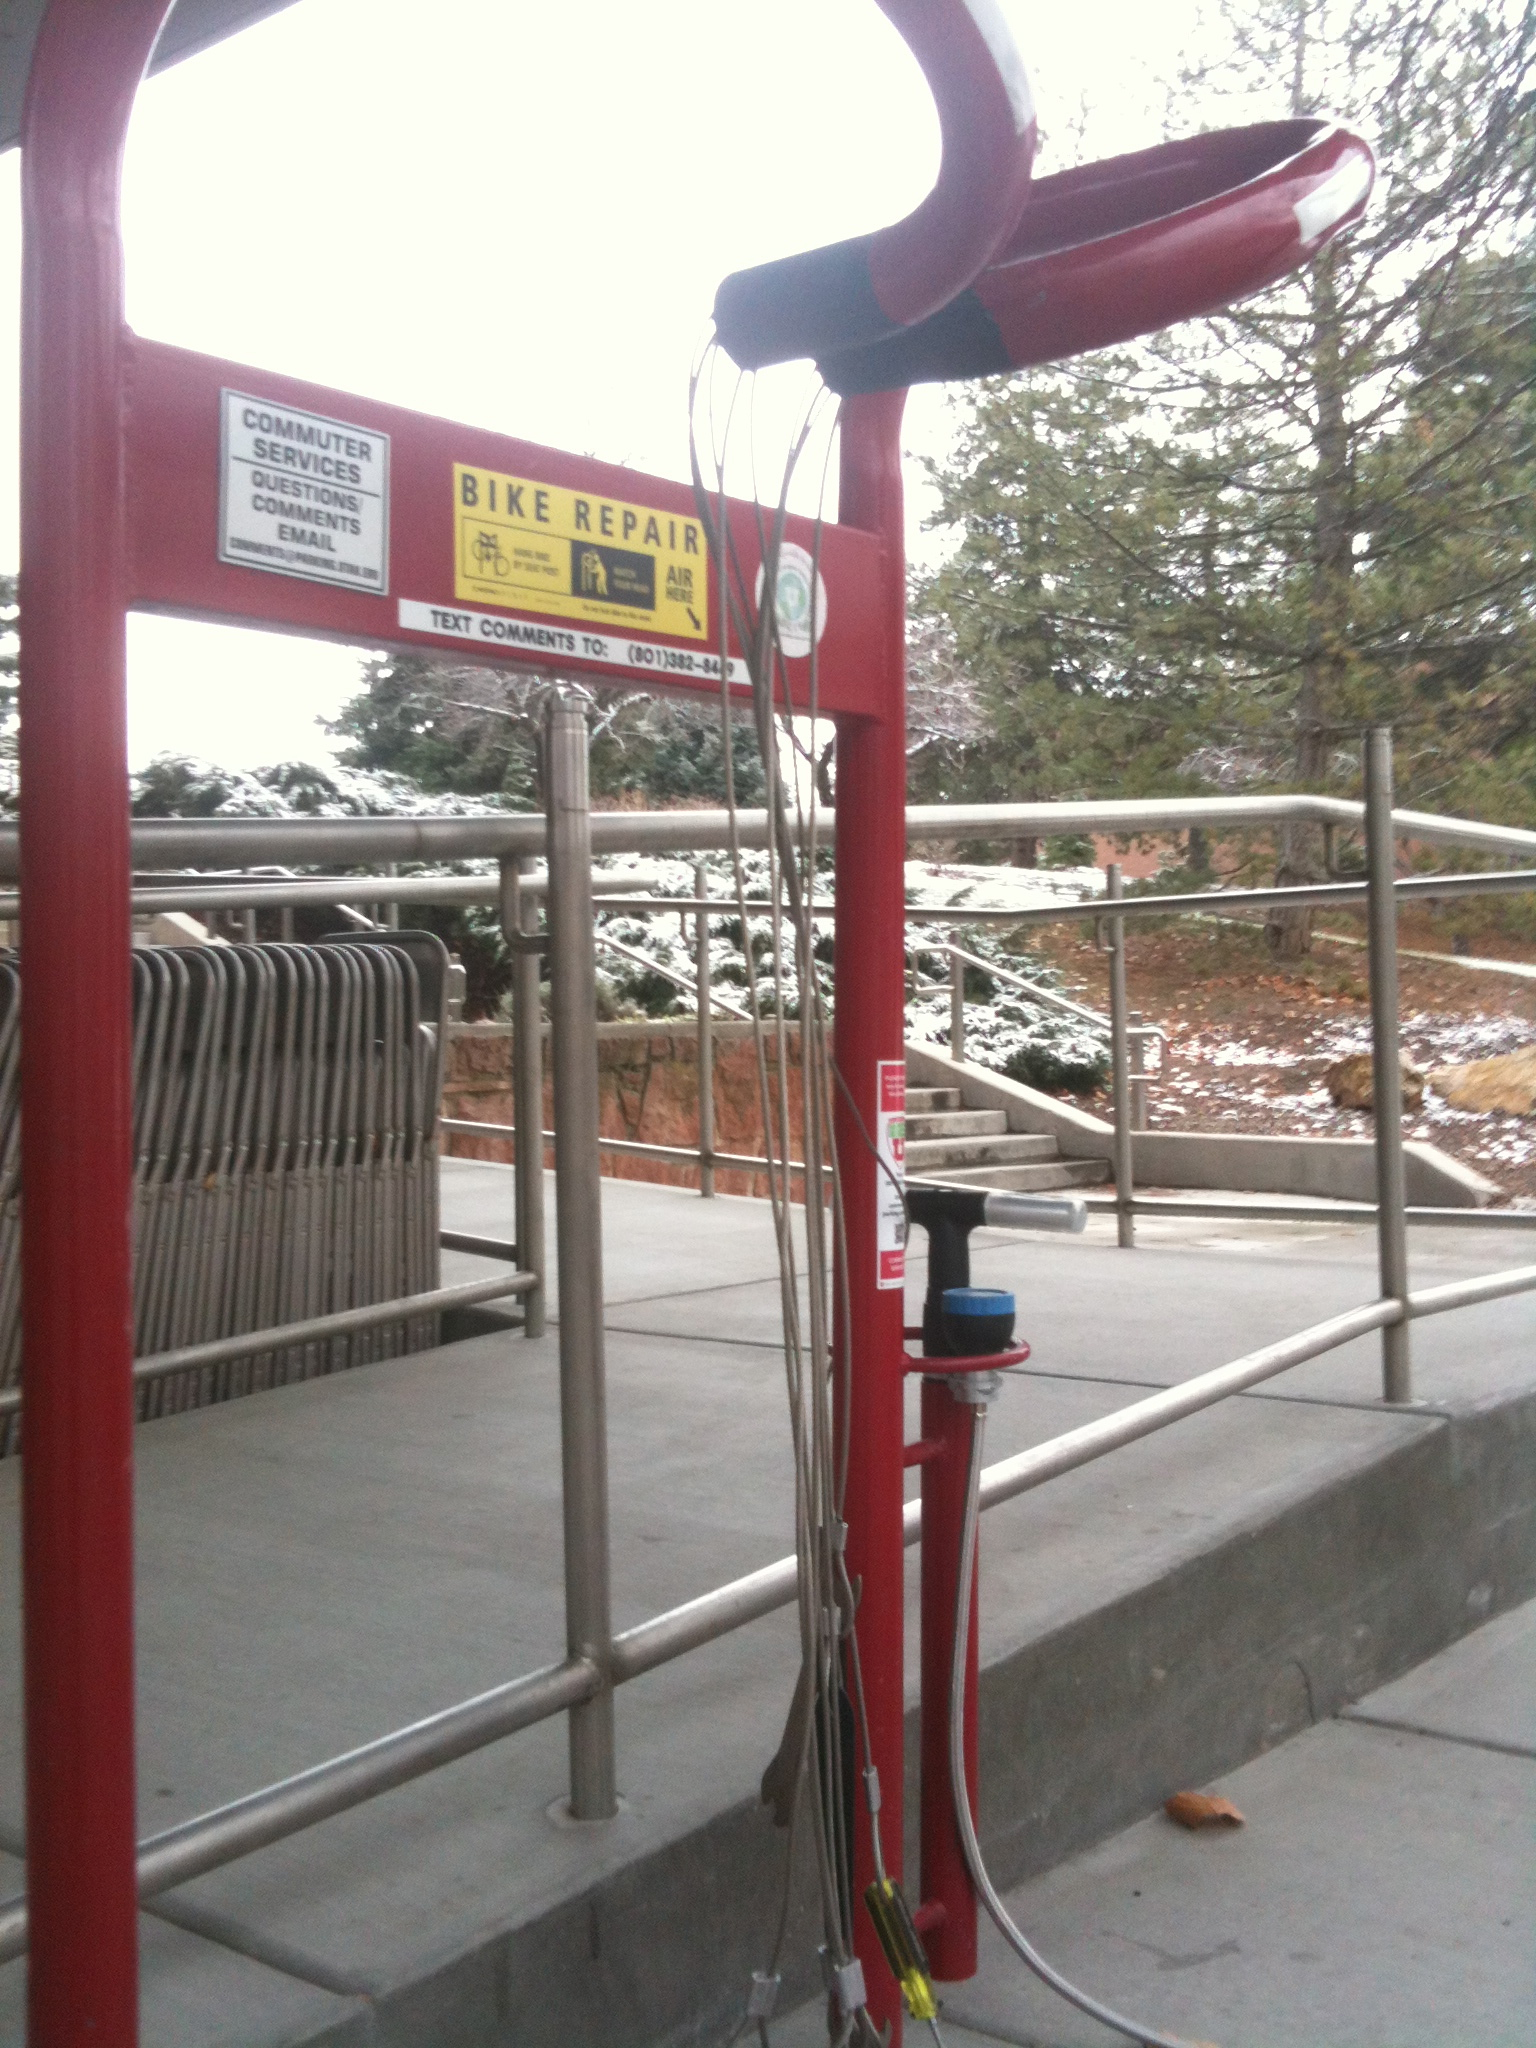 A repair station at the University of Utah. Ogden will get six new stations in spring of 2014 (not the model pictured).